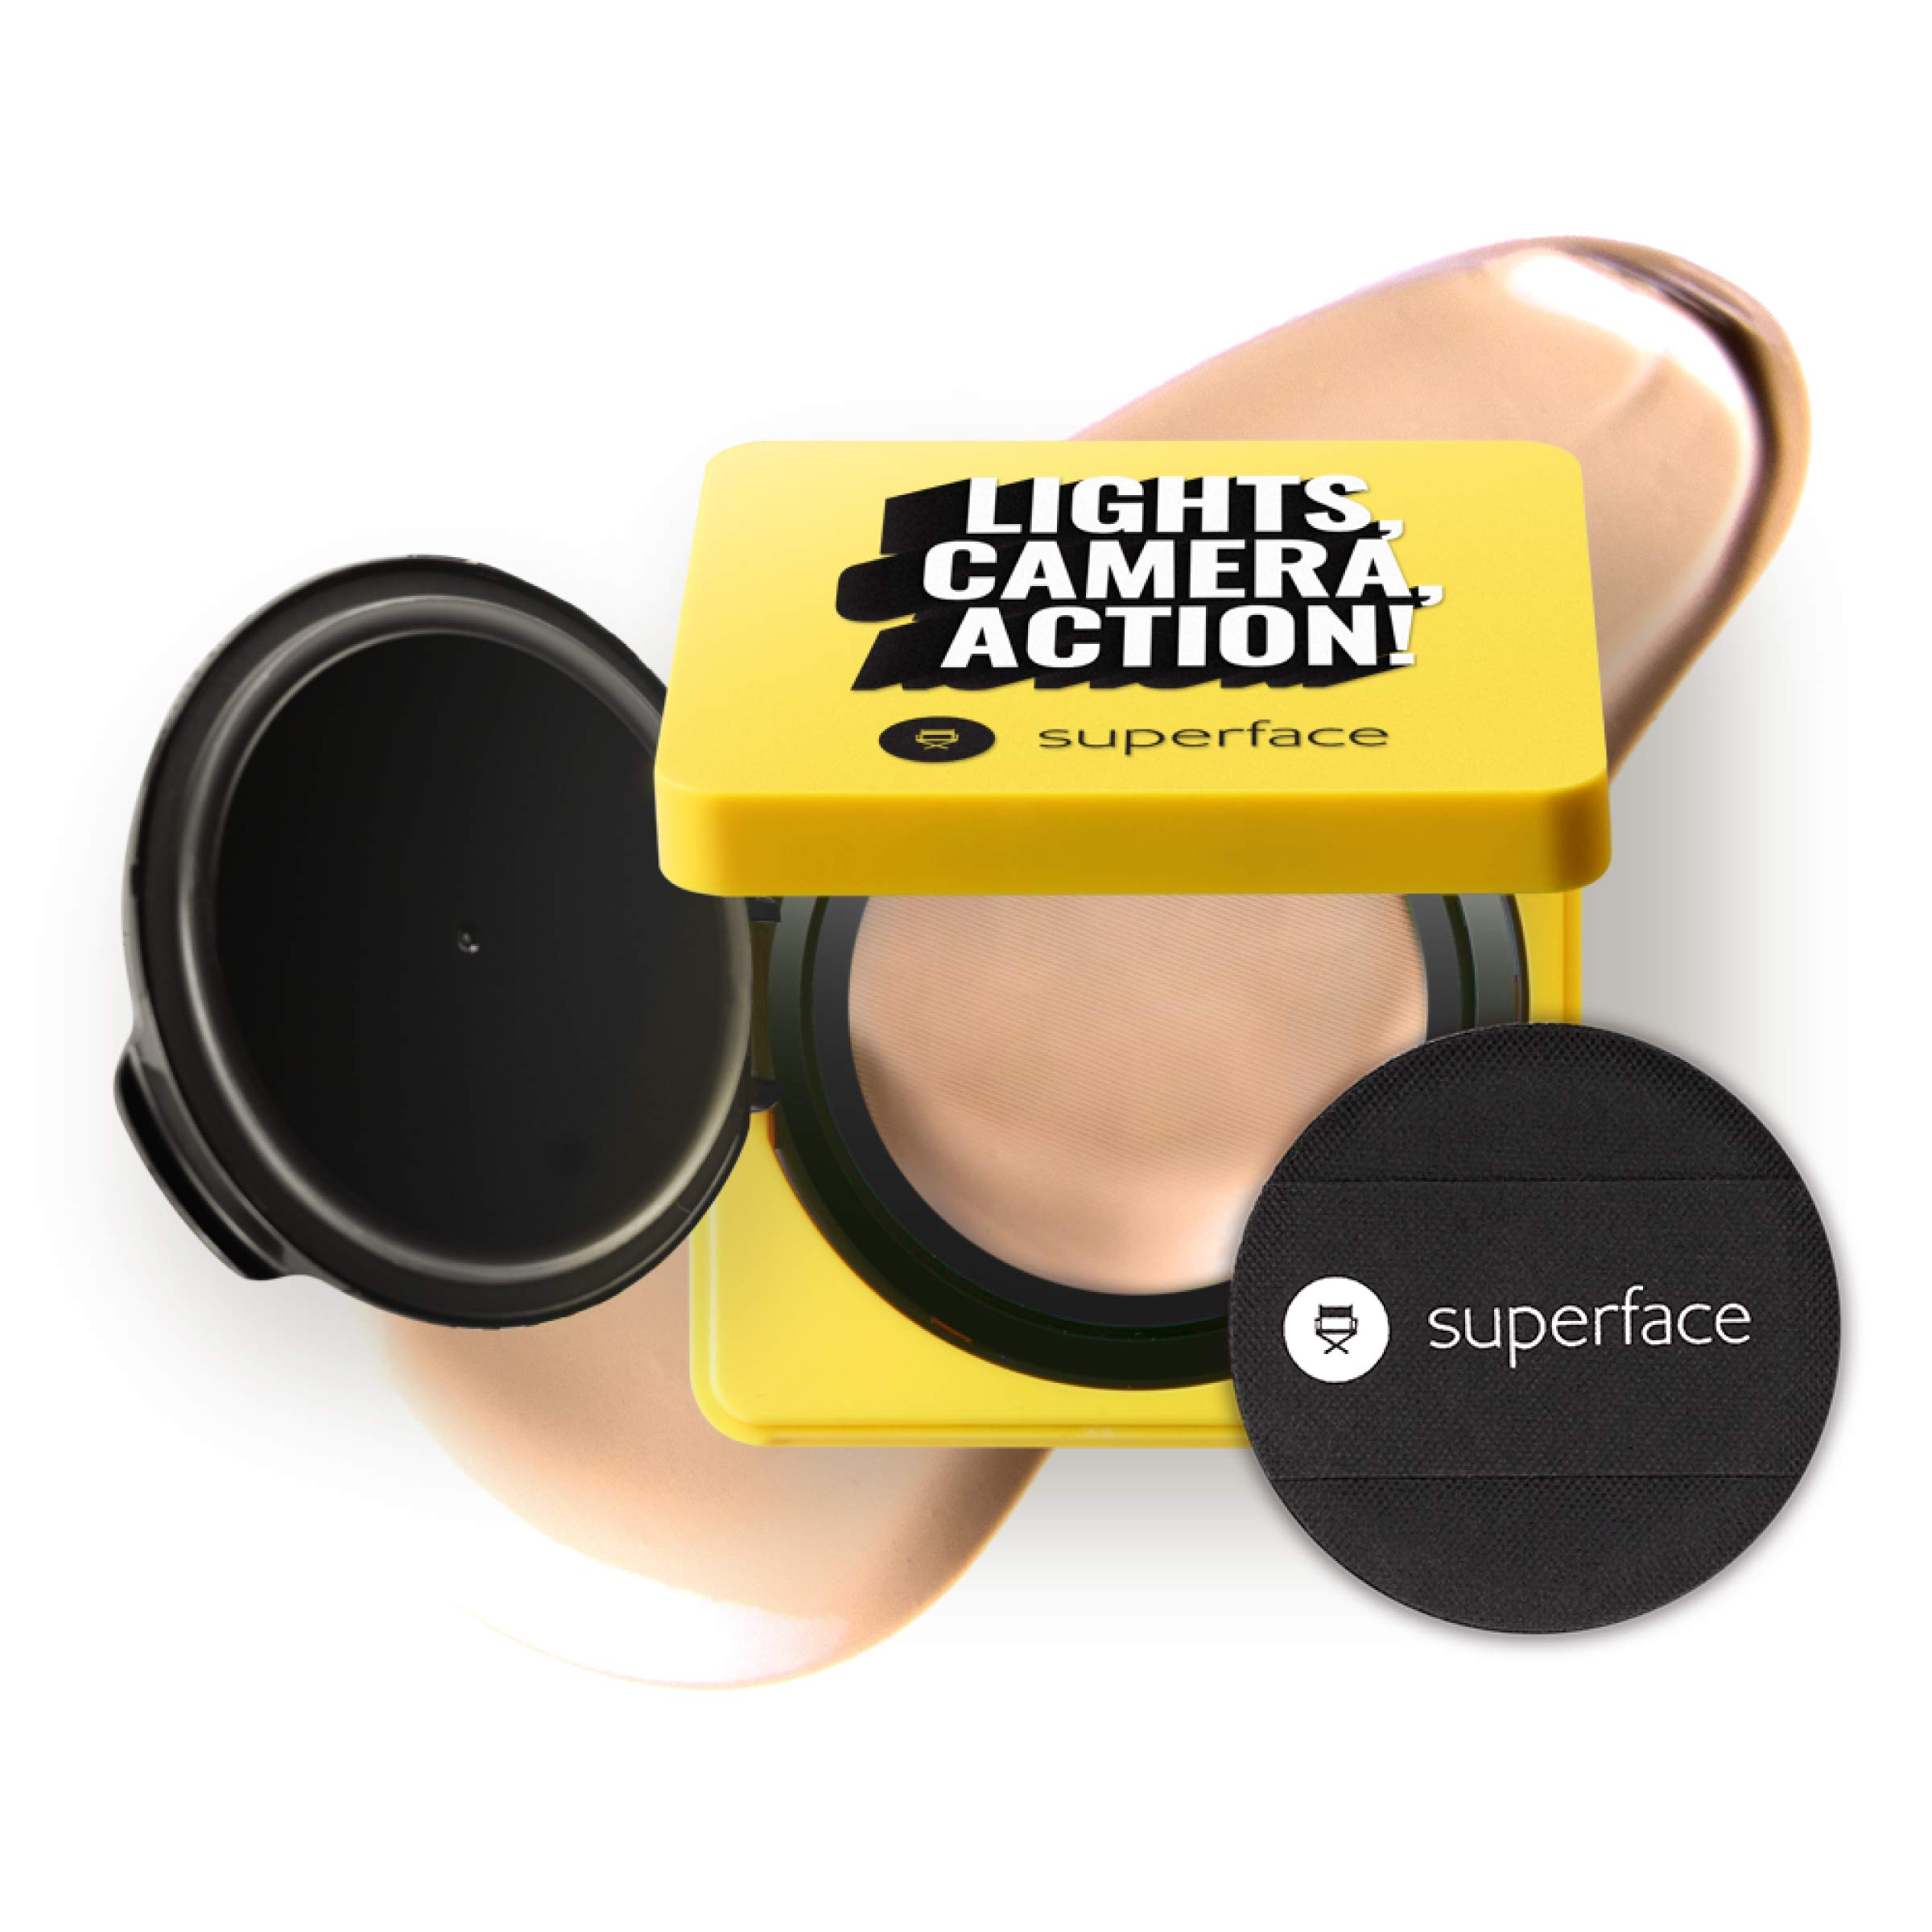 Superface Zoom In Mesh Cushion, SPF 50+, PA+++ Oil Control, Anti-Wrinkling, Anti Redness, UV Protection Multi-use Cushion Foundation Full Coverage Makeup for Sensitive Skin(0.42oz.)(02 Natural)